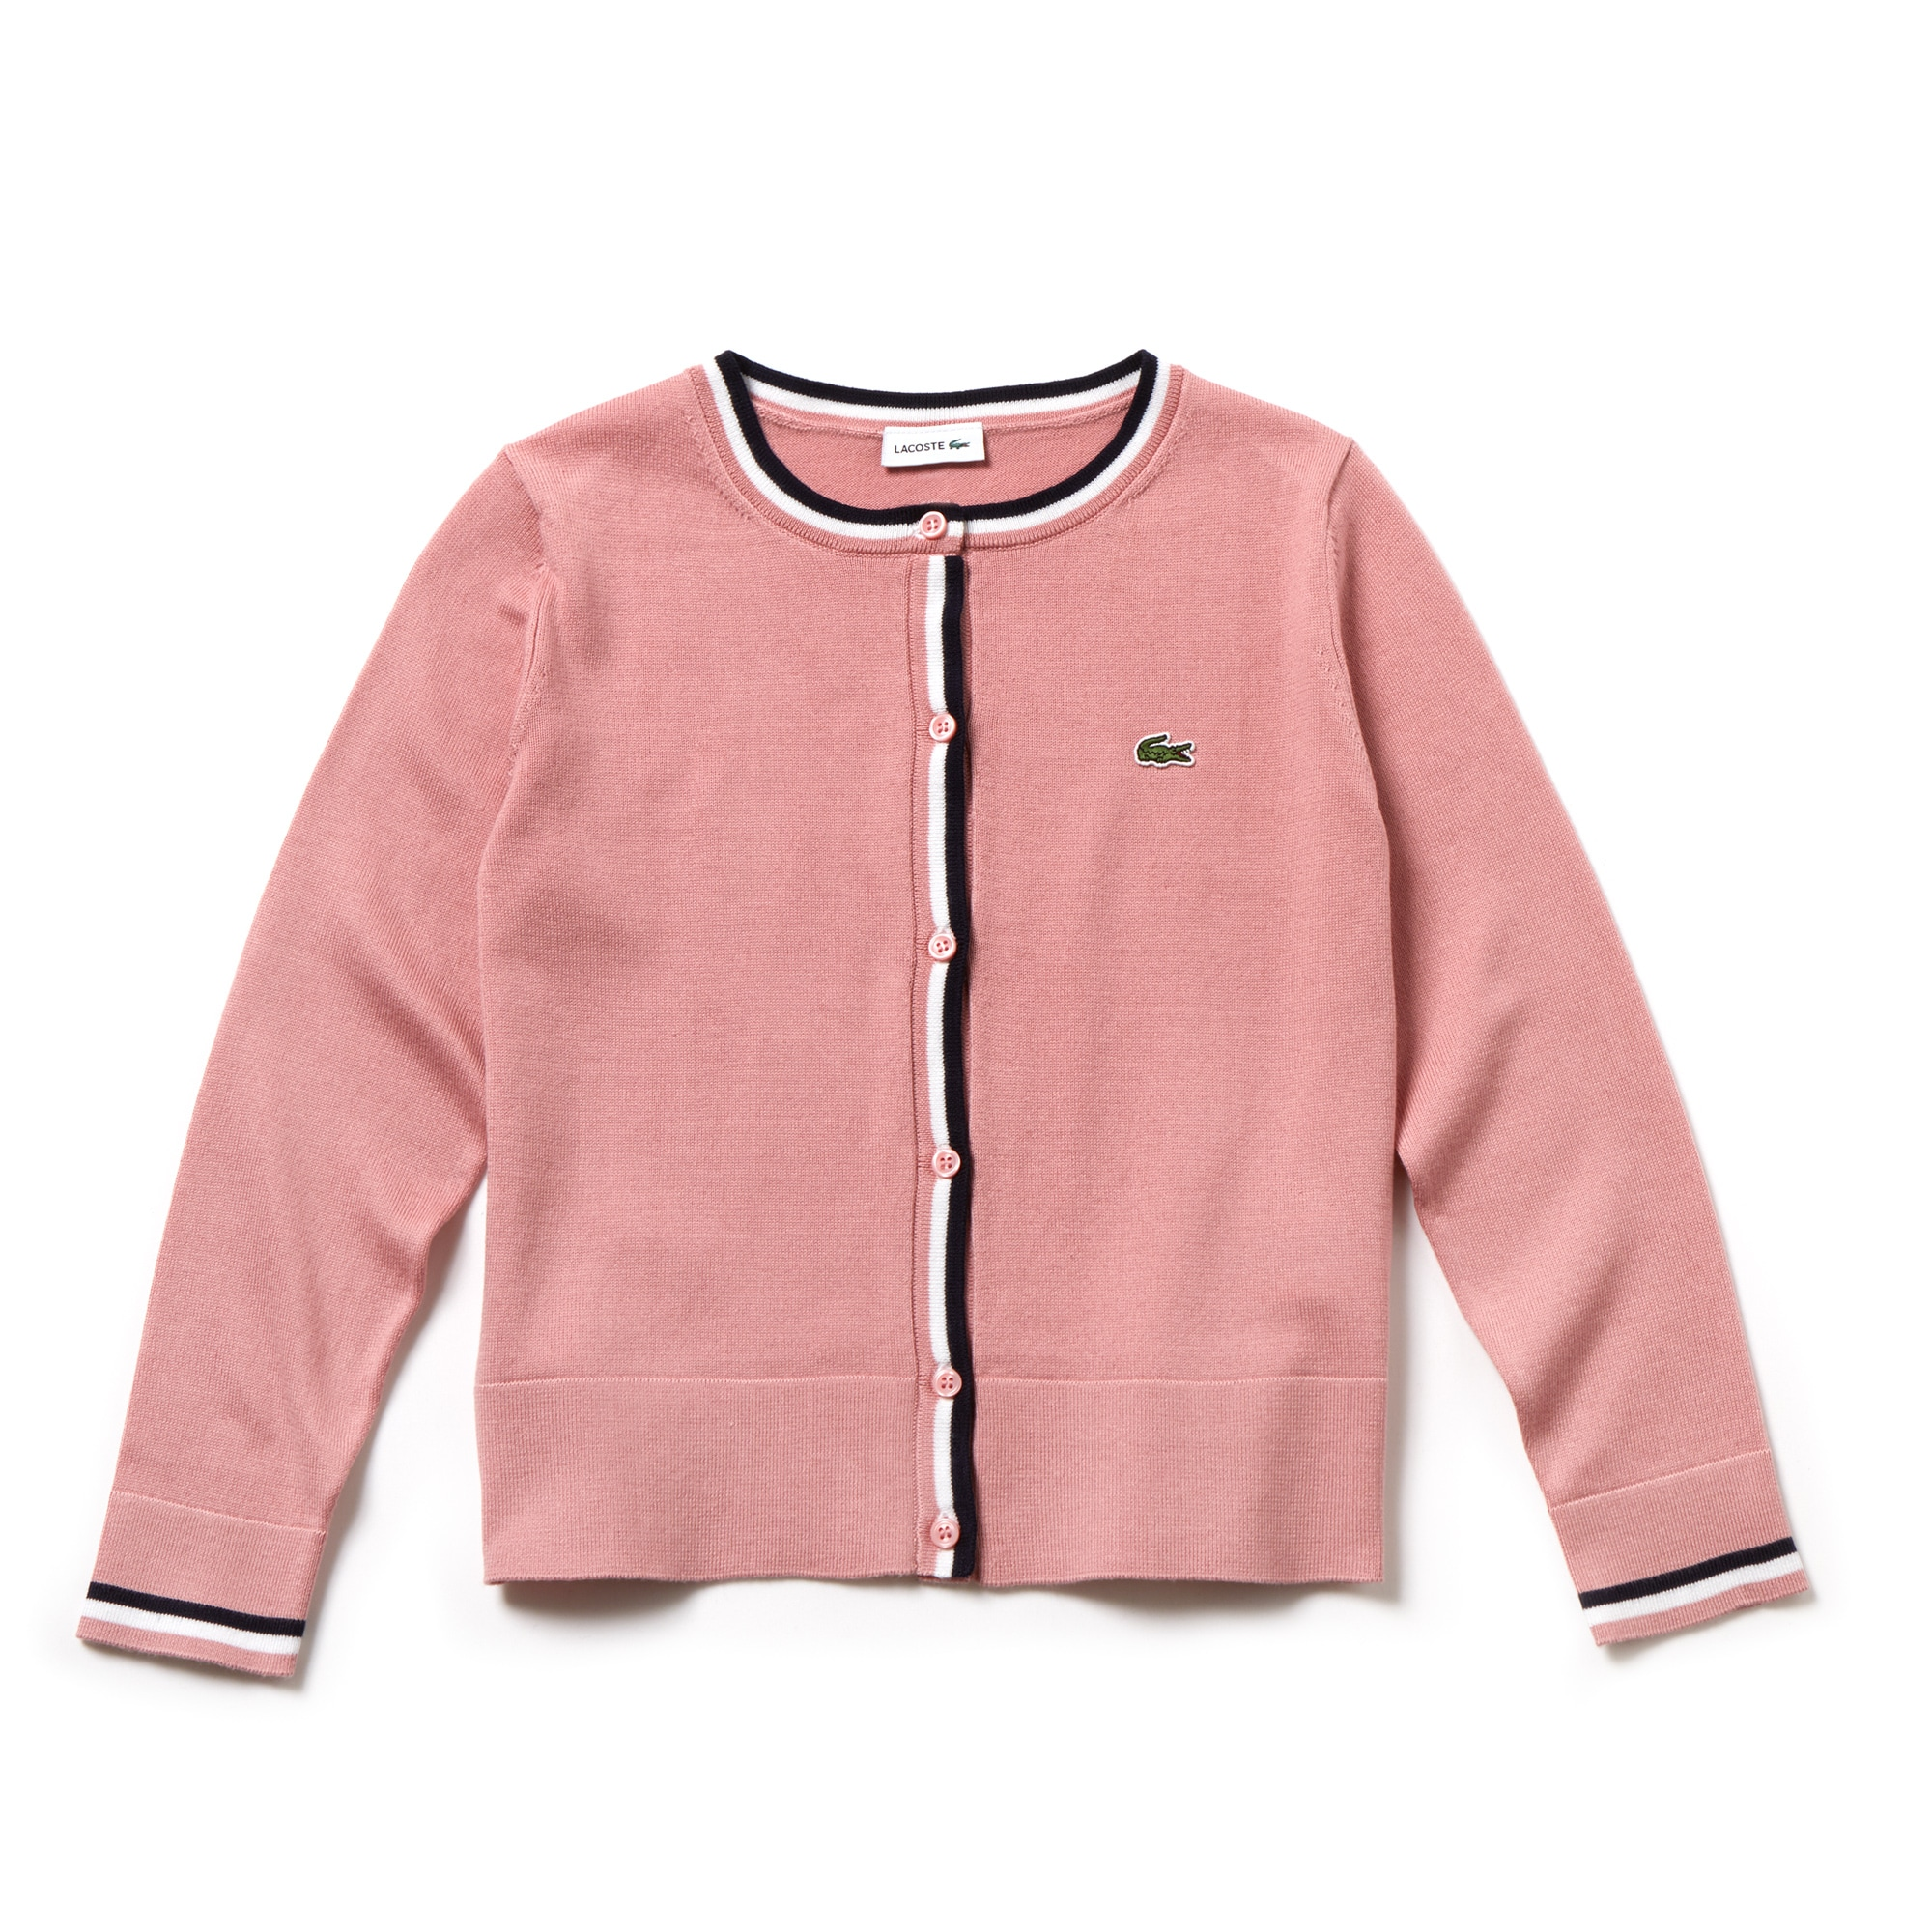 Girls' Contrast Finishes Cotton Jersey Cardigan